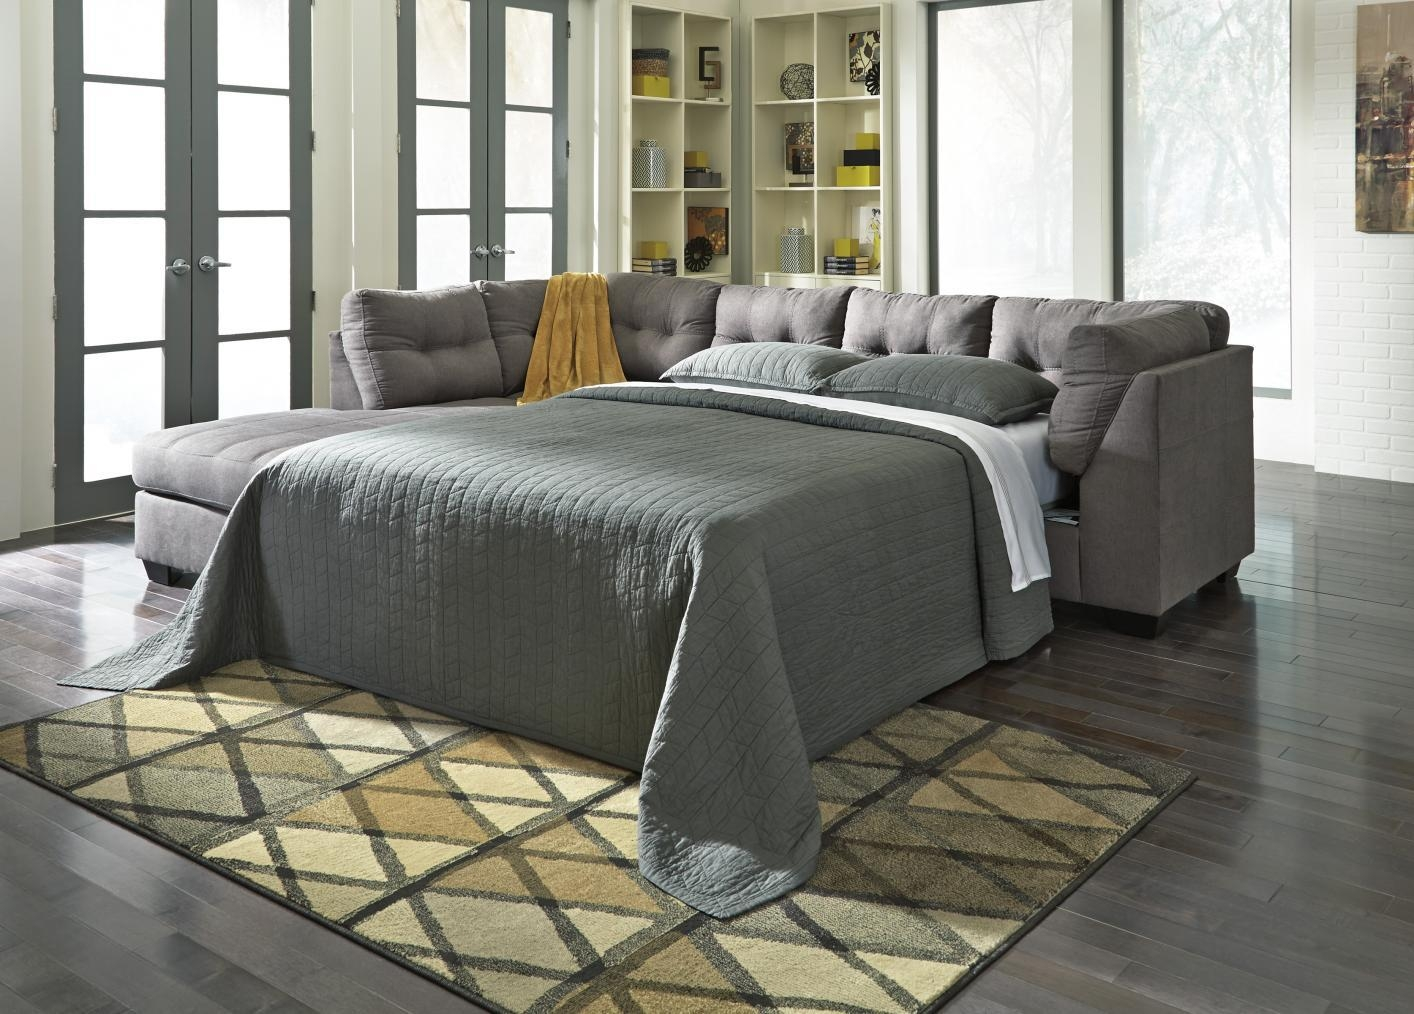 Maier Grey Fabric Sectional Sleeper Sofa - Steal-A-Sofa Furniture intended for Los Angeles Sleeper Sofas